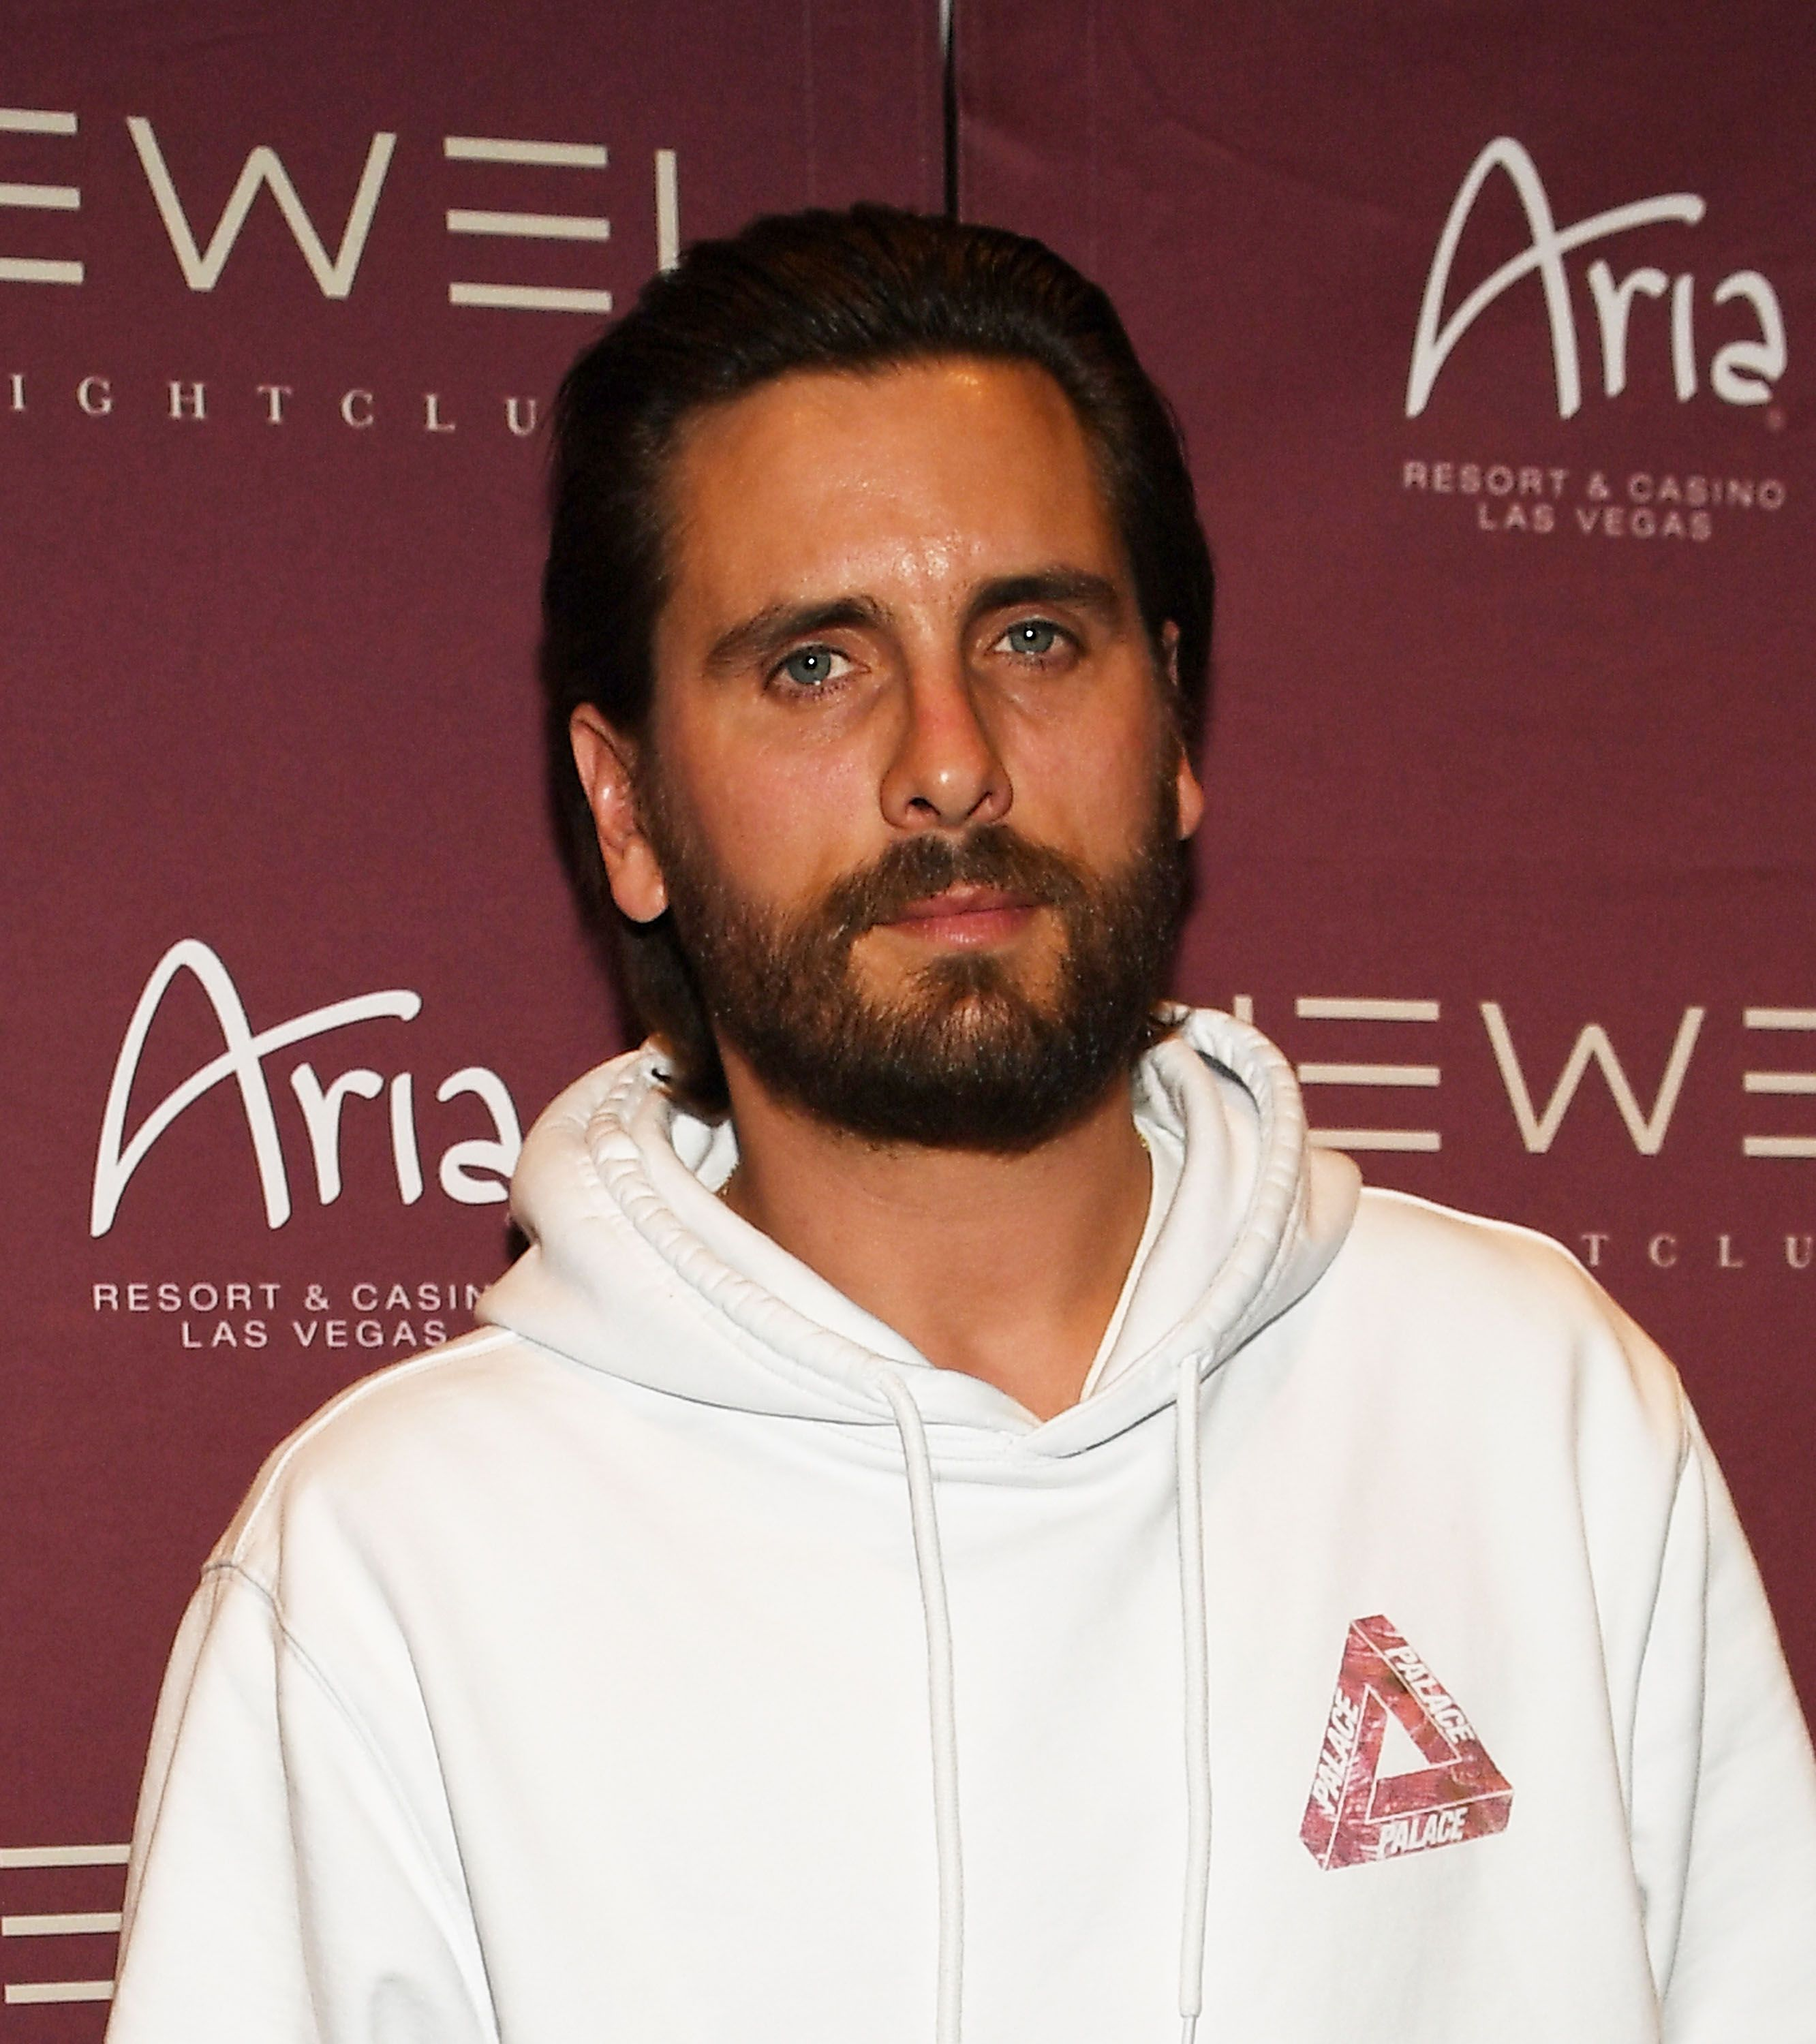 Scott Disick at ARIA Resort & Casino on March 23, 2018 in Las Vegas, Nevada. | Source: Getty Images